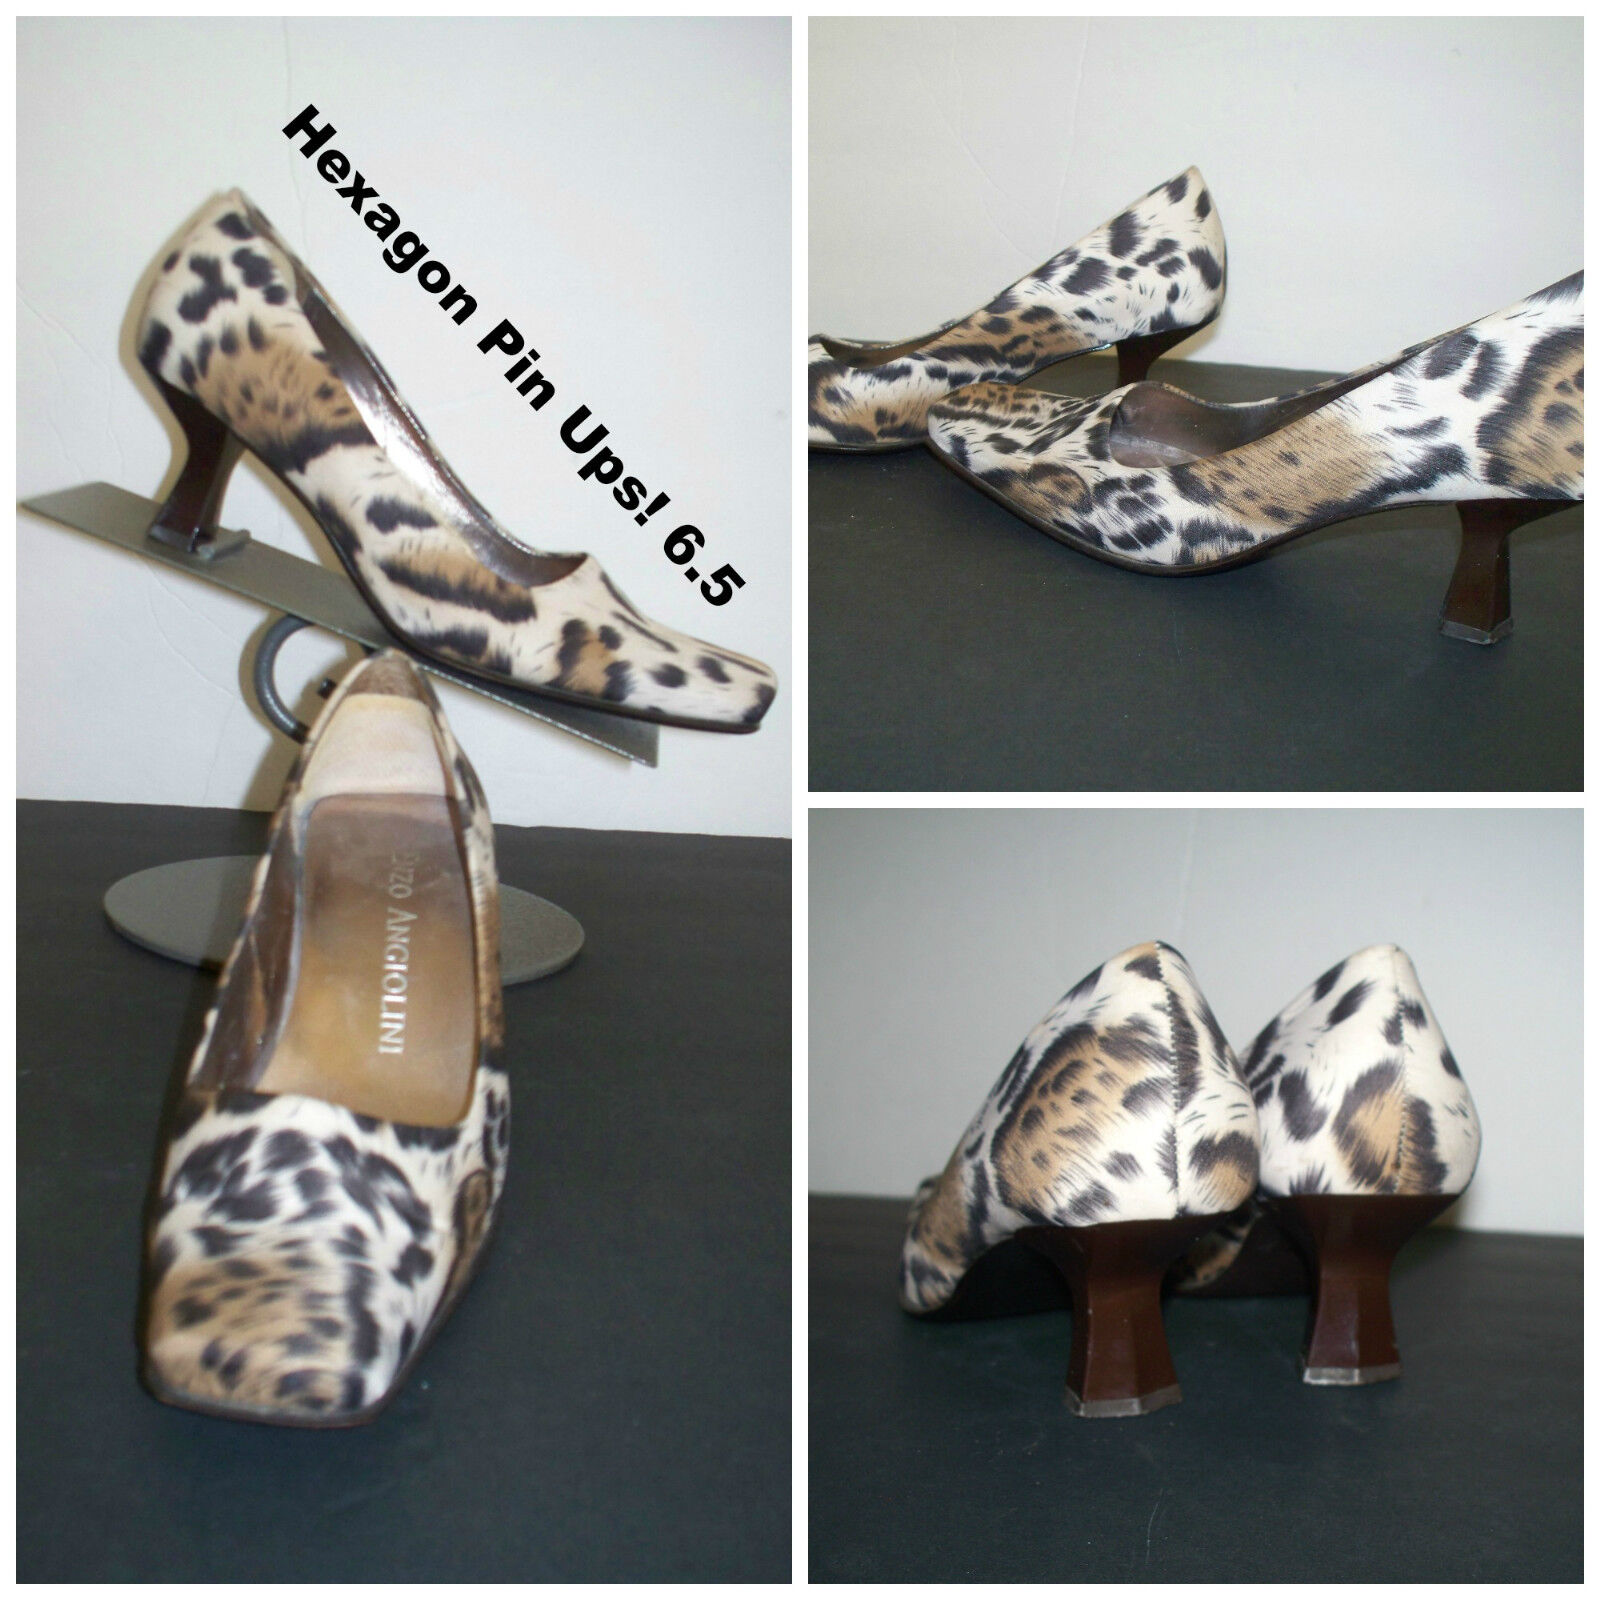 Enzo Classic Angiolini Hexagon Pump Animal Print Cloth Canvas Classic Enzo Pumps / Heels 6.5 836cac